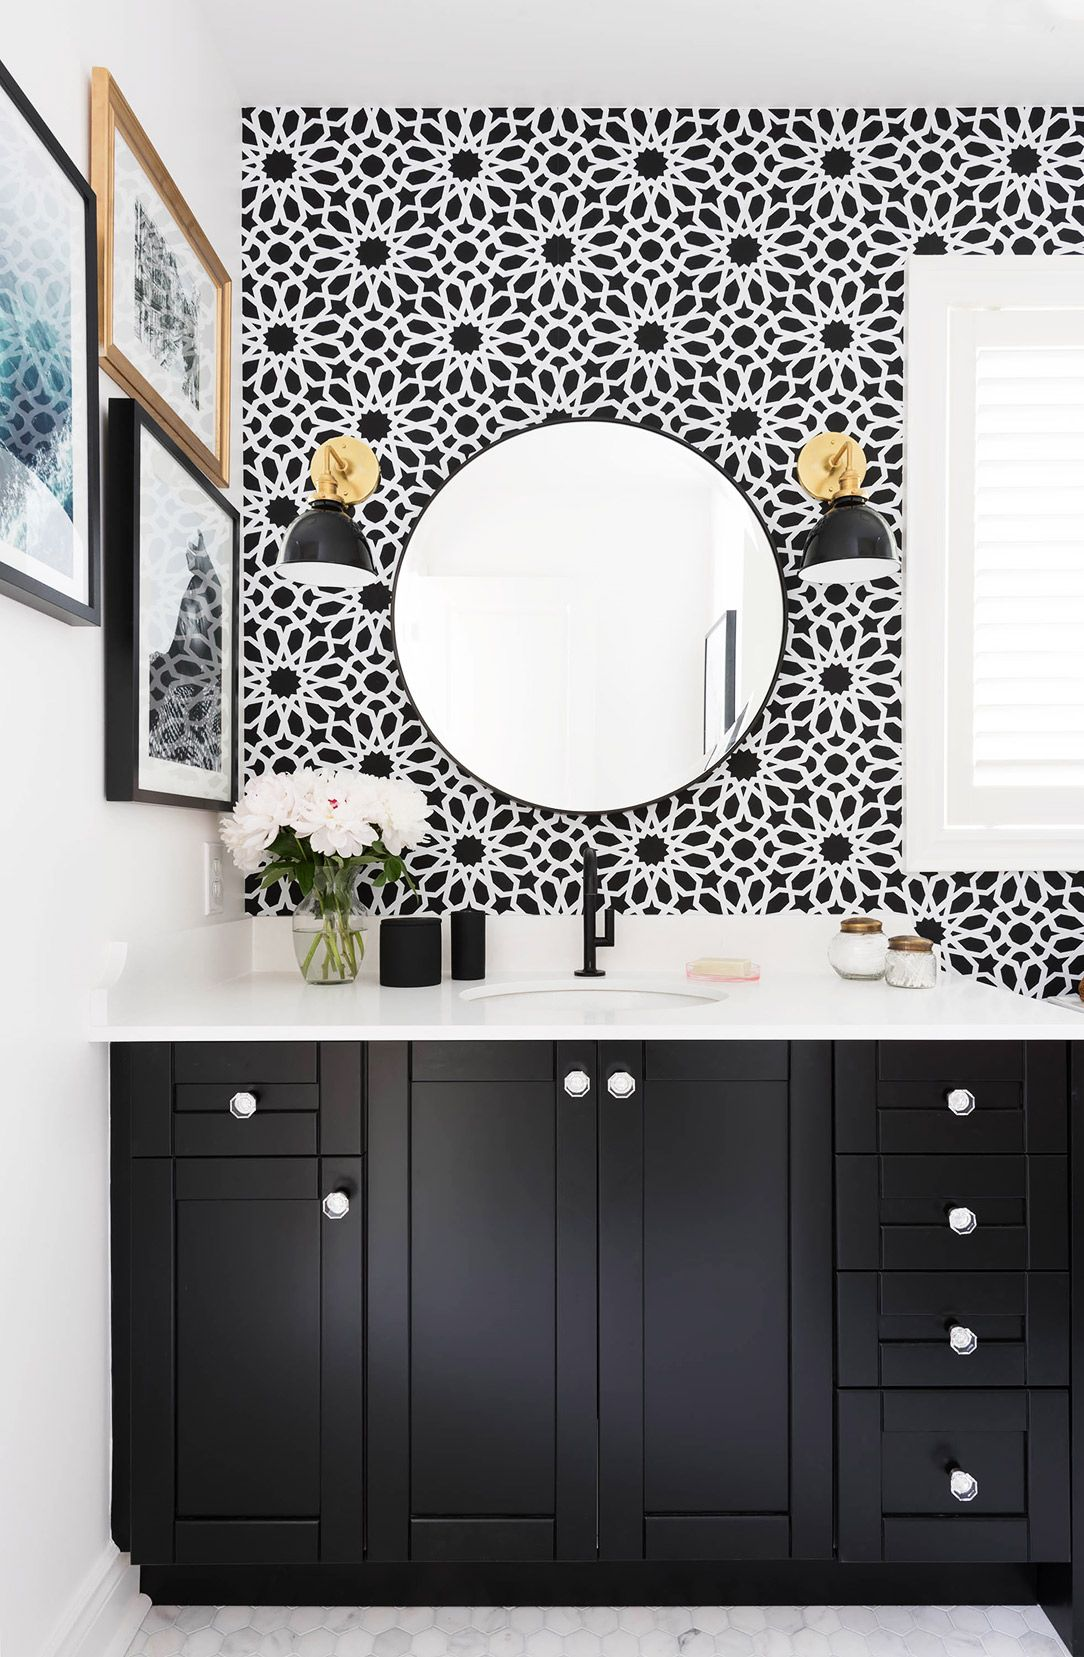 Merveilleux Bathroom Black And White Wallpaper